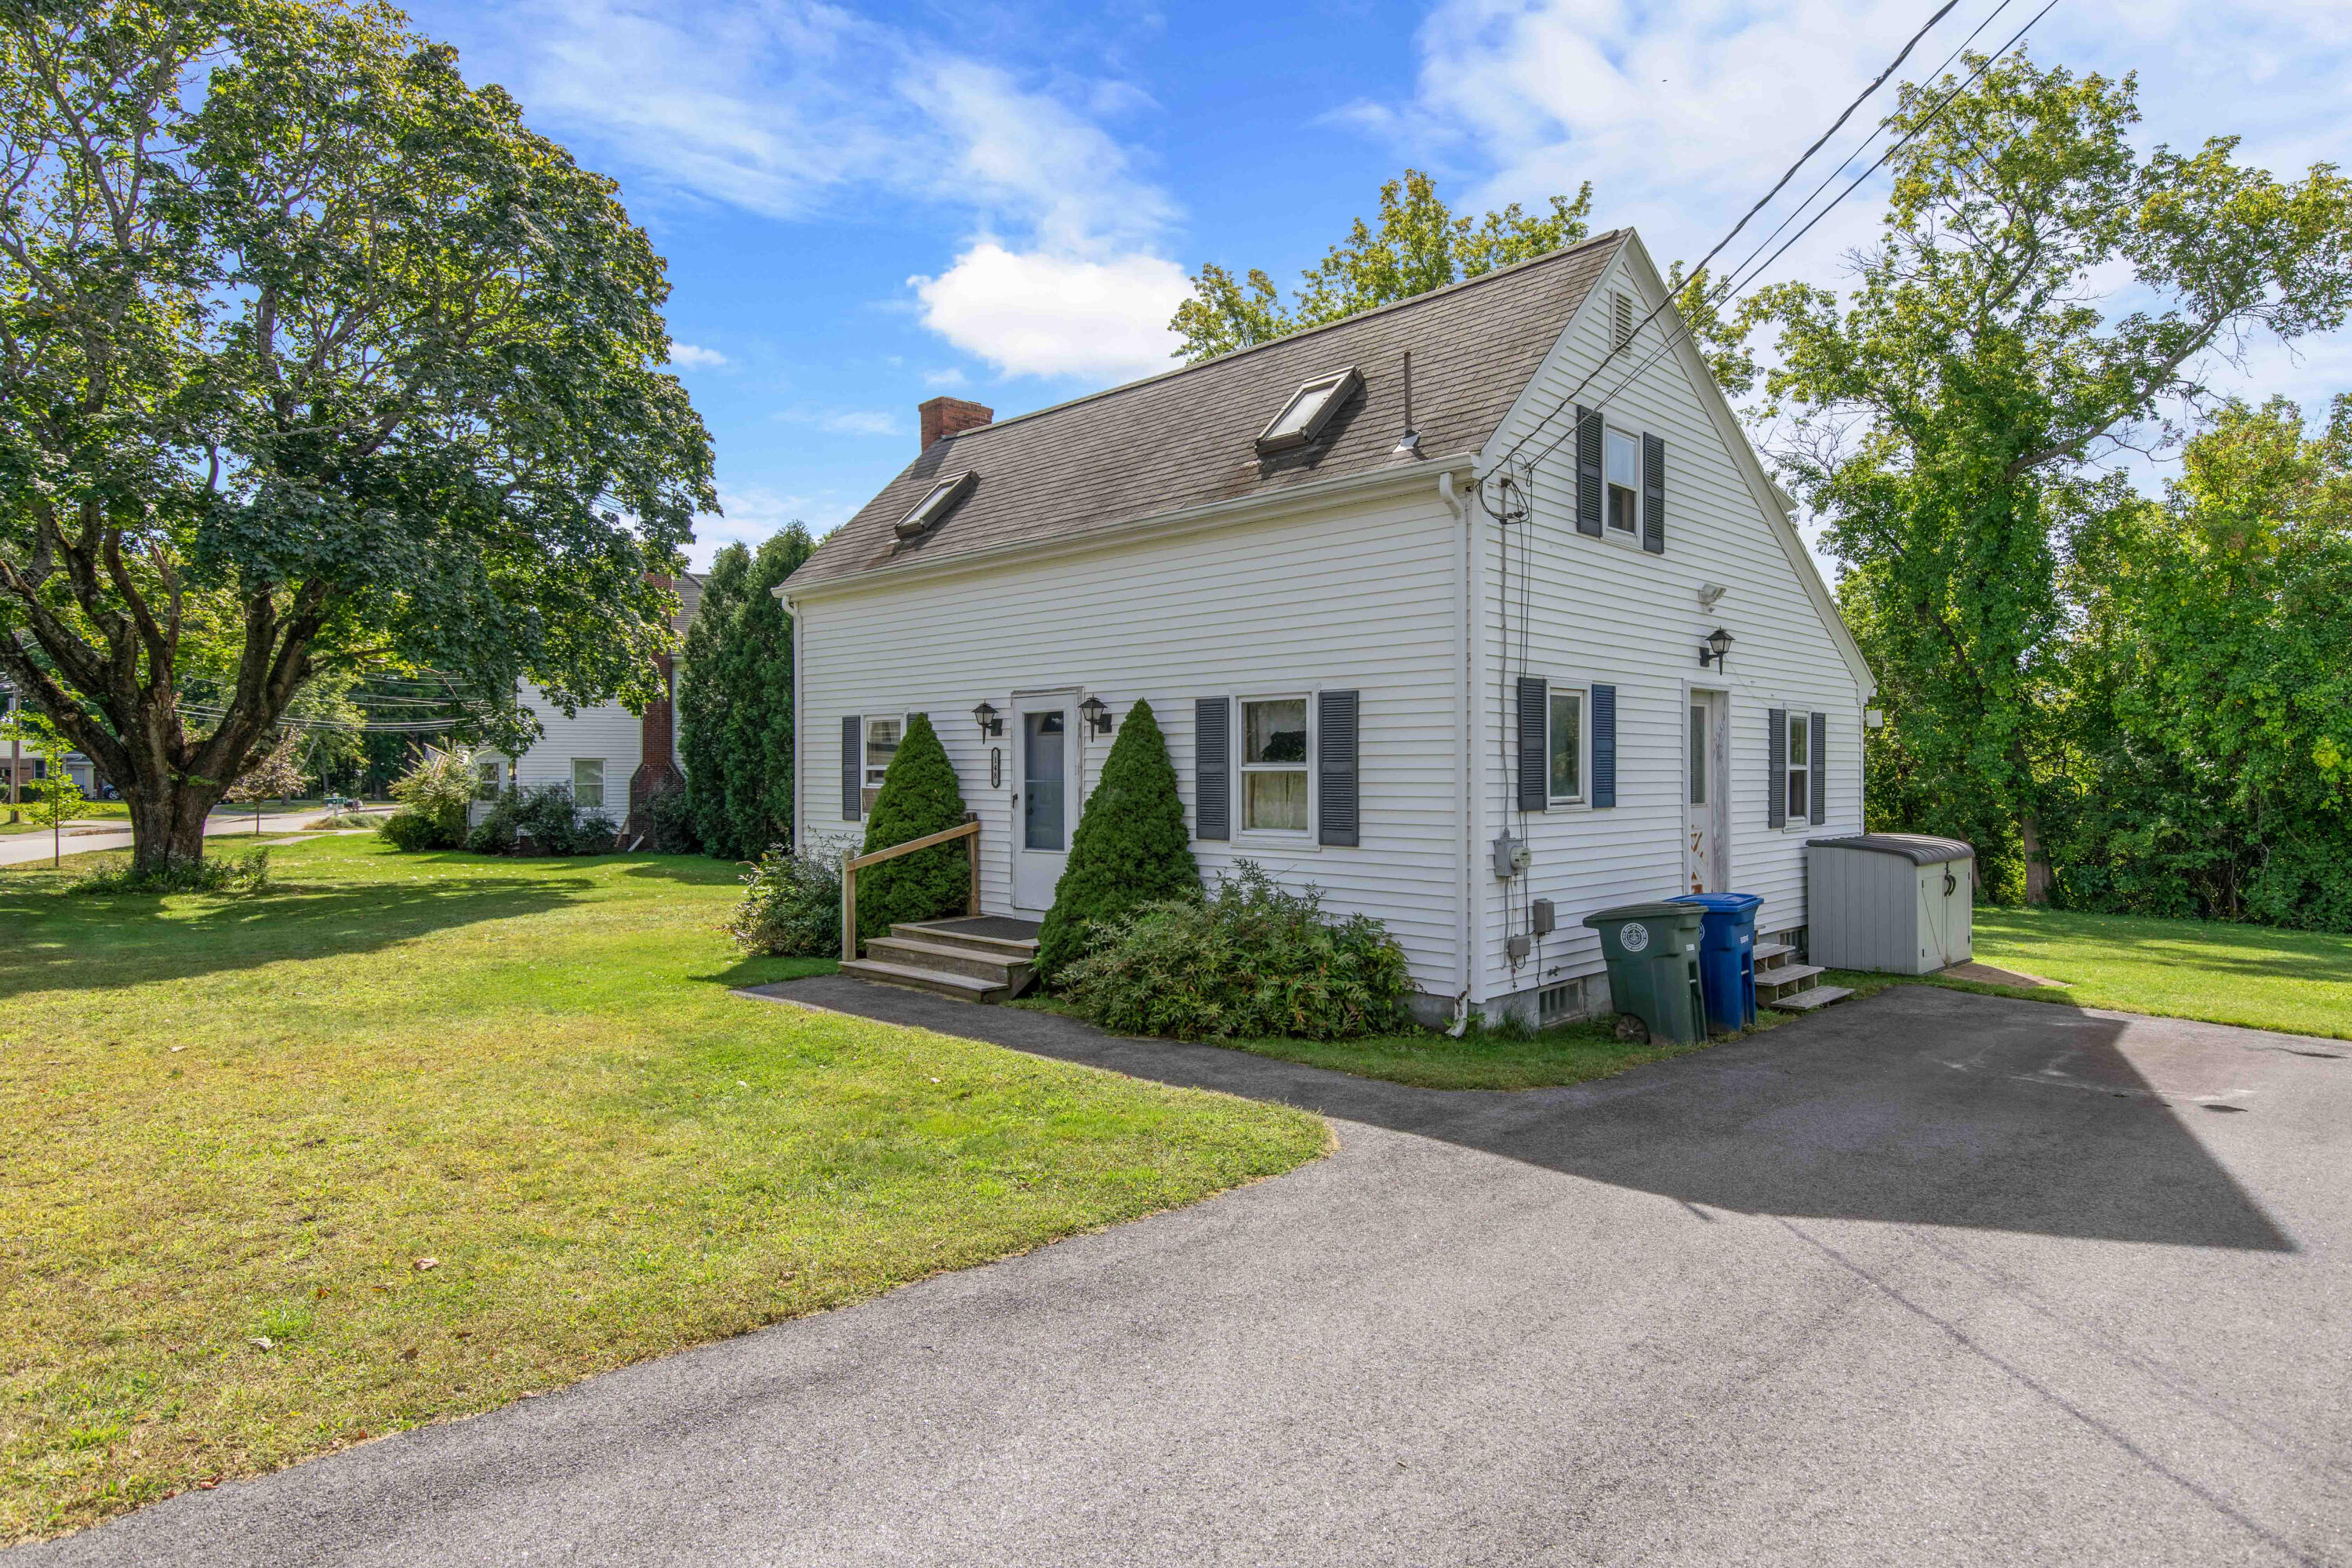 Main image for MLS listing 1509153